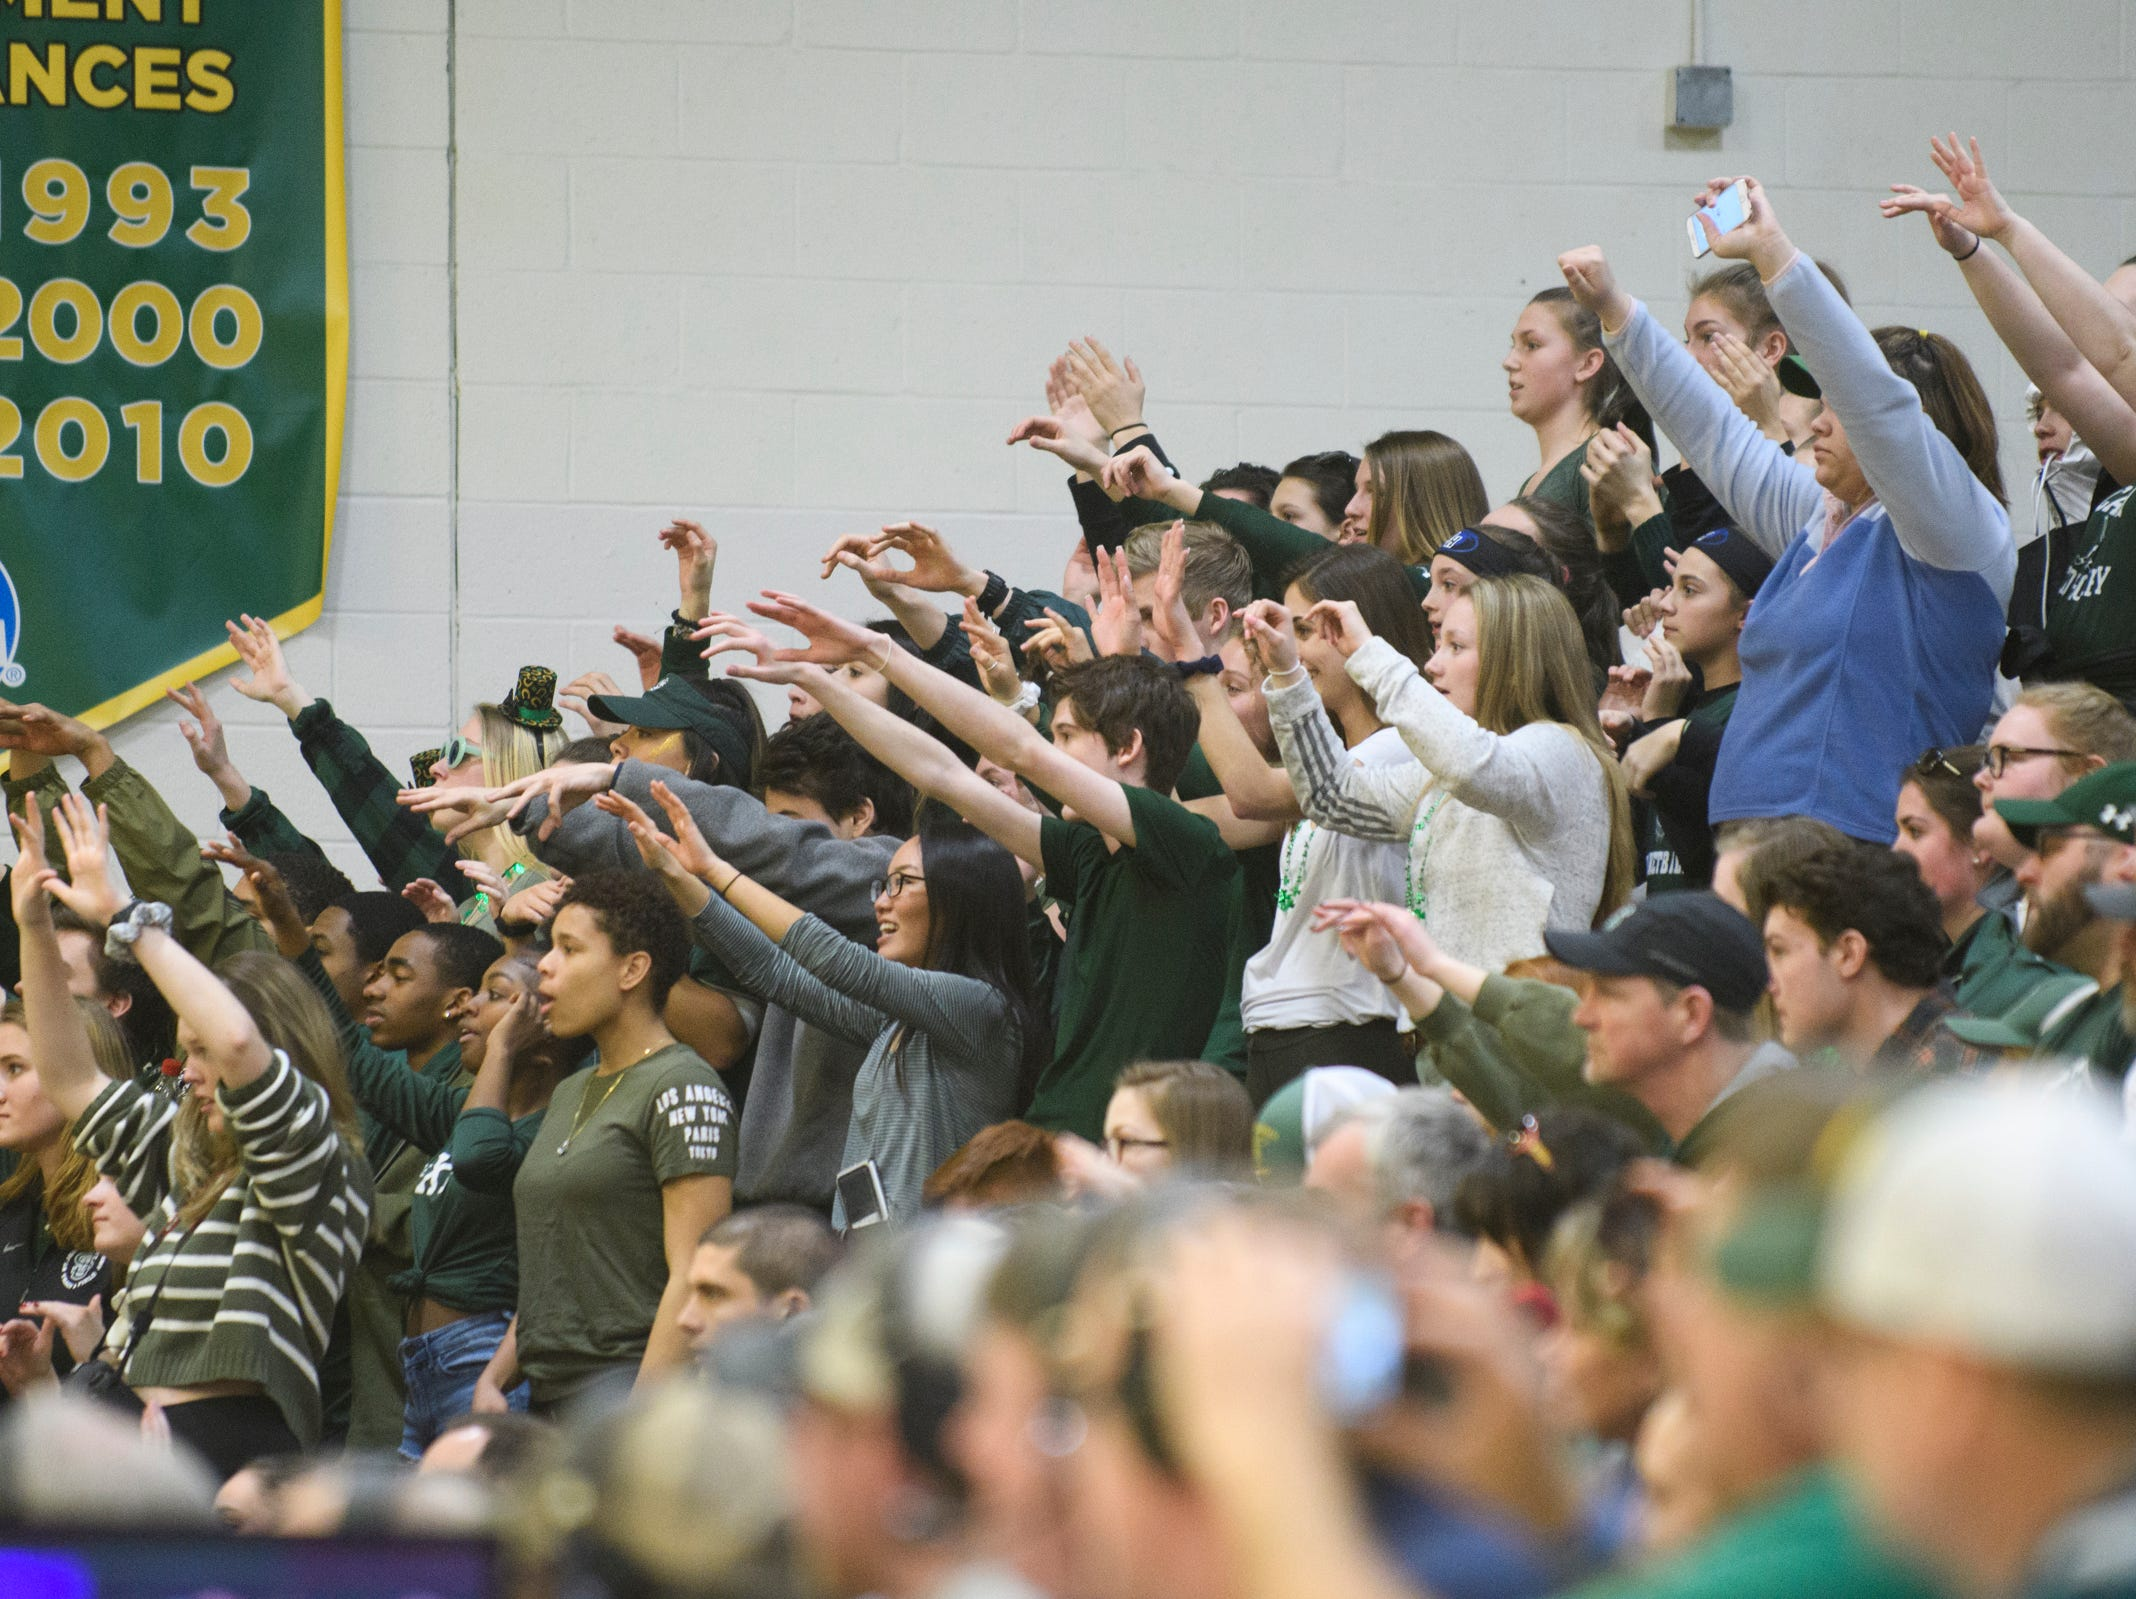 St. johnsbury fans hold up their hands during a free throw attempt in the DI boys basketball championship game between the St. Johnsbury Hilltoppers and the Rutland Raiders at Patrick Gym on Sunday afternoon March 17, 2019 in Burlington, Vermont.